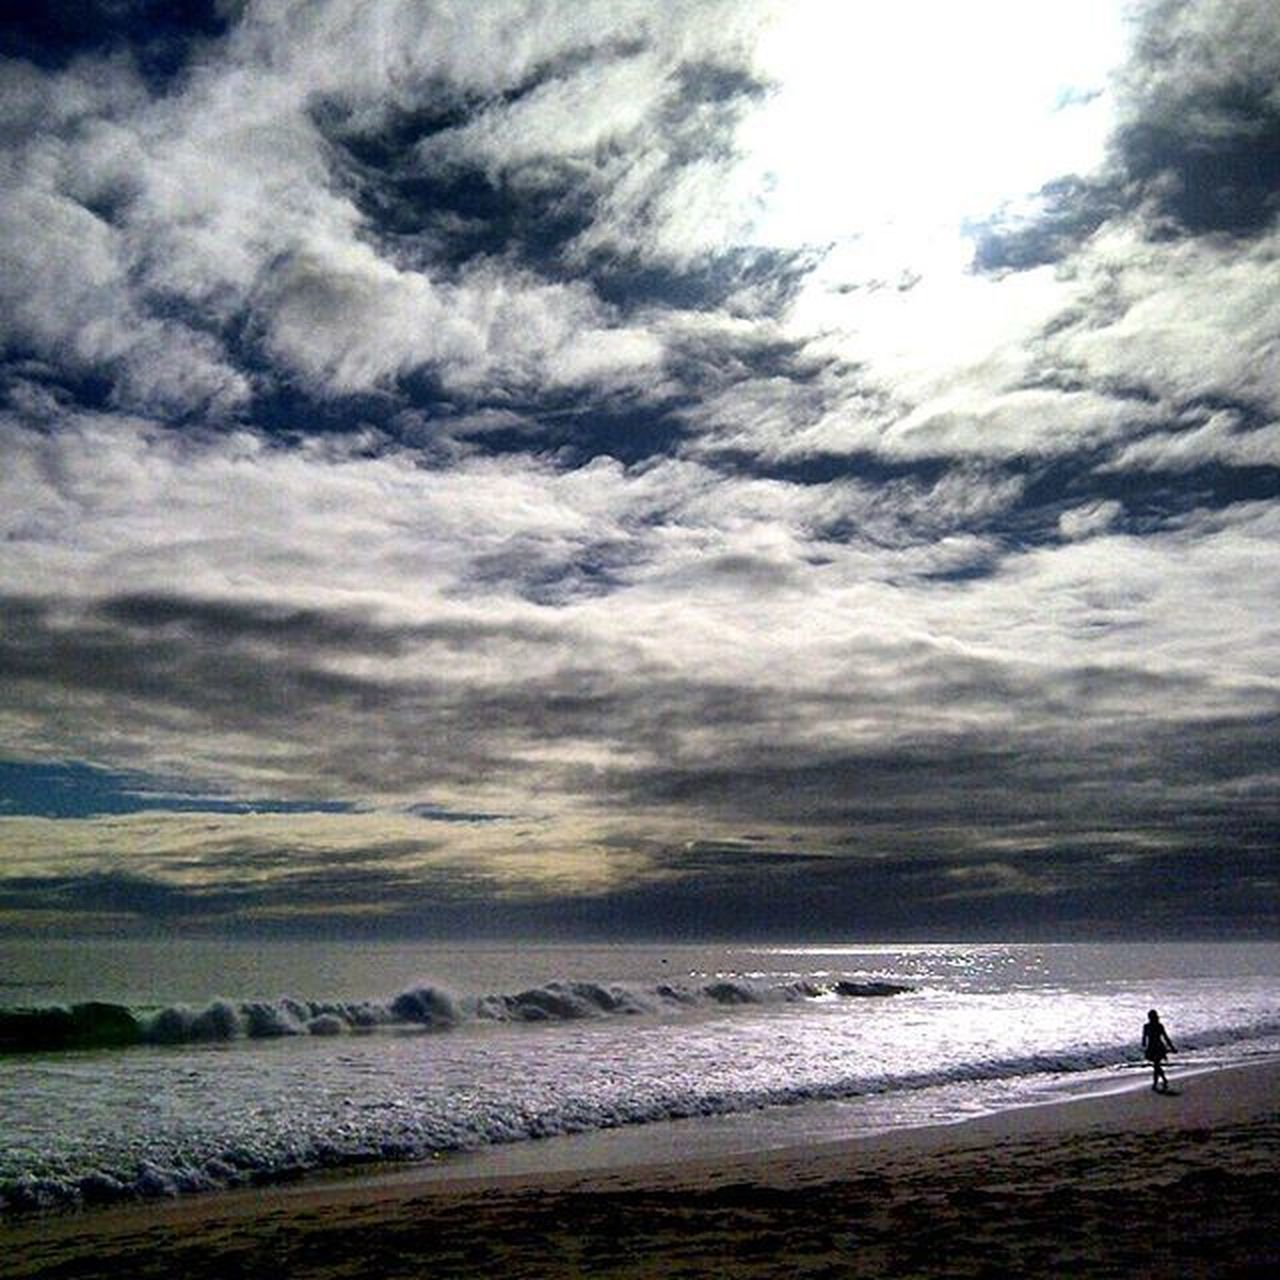 sea, beach, water, cloud - sky, nature, wave, sky, beauty in nature, scenics, outdoors, horizon over water, sand, vacations, tranquility, real people, sunset, day, men, power in nature, one person, people